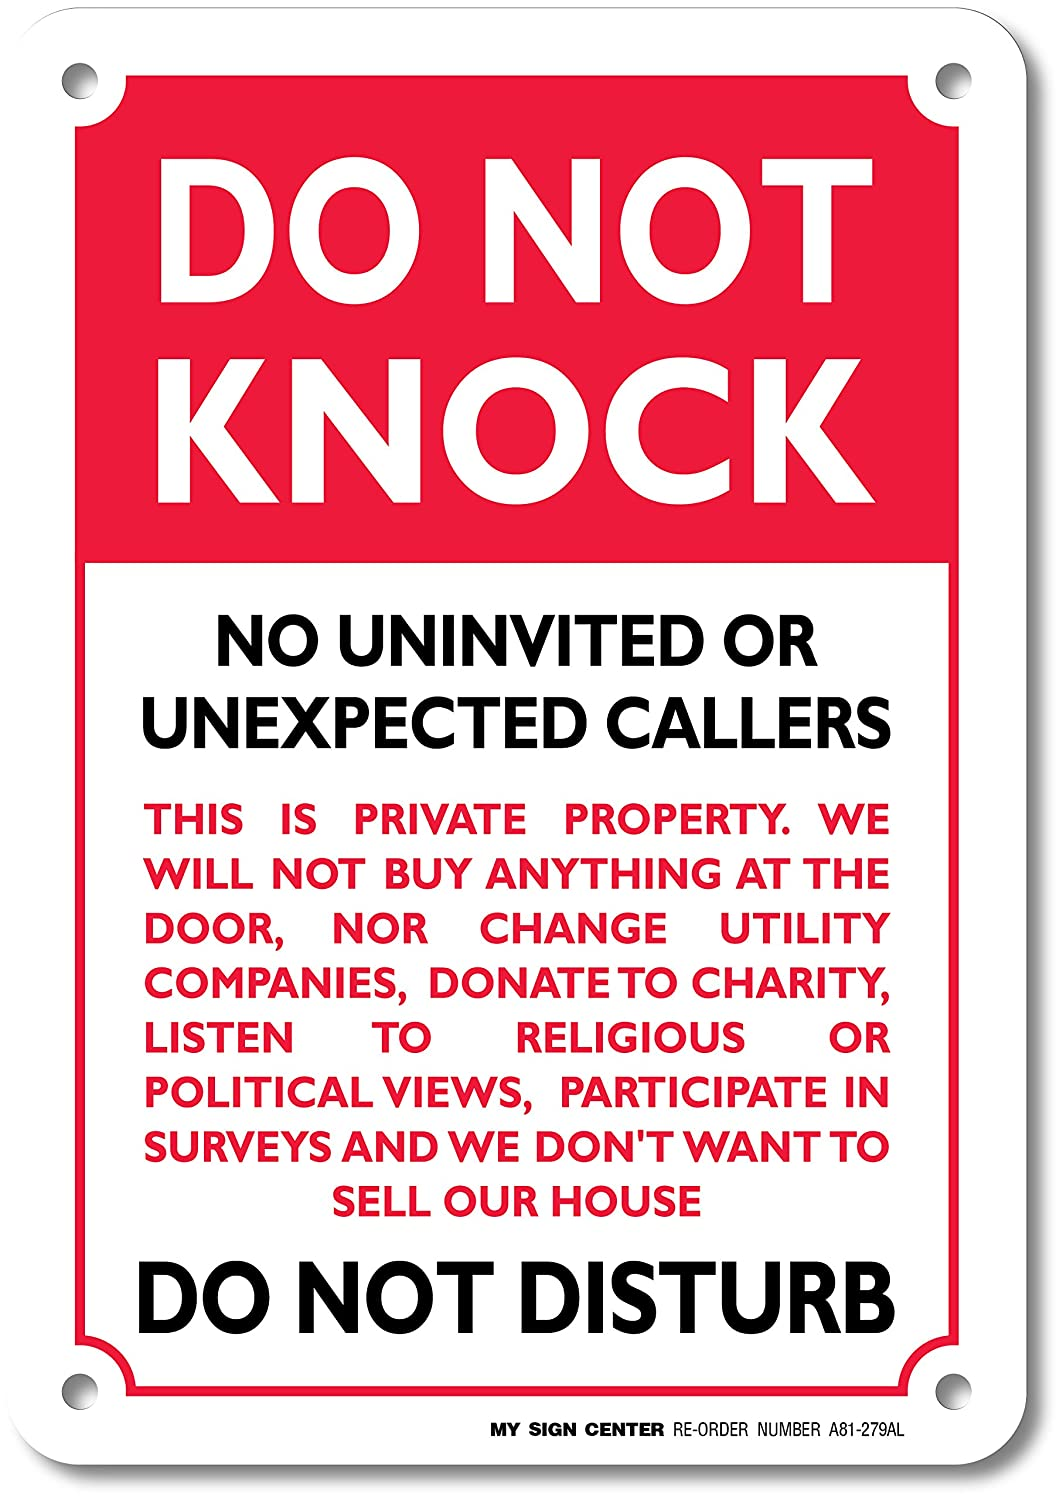 photo relating to Do Not Disturb Sign Printable named Do Not Knock Do Not Disturb Indication - No Soliciting - 10\